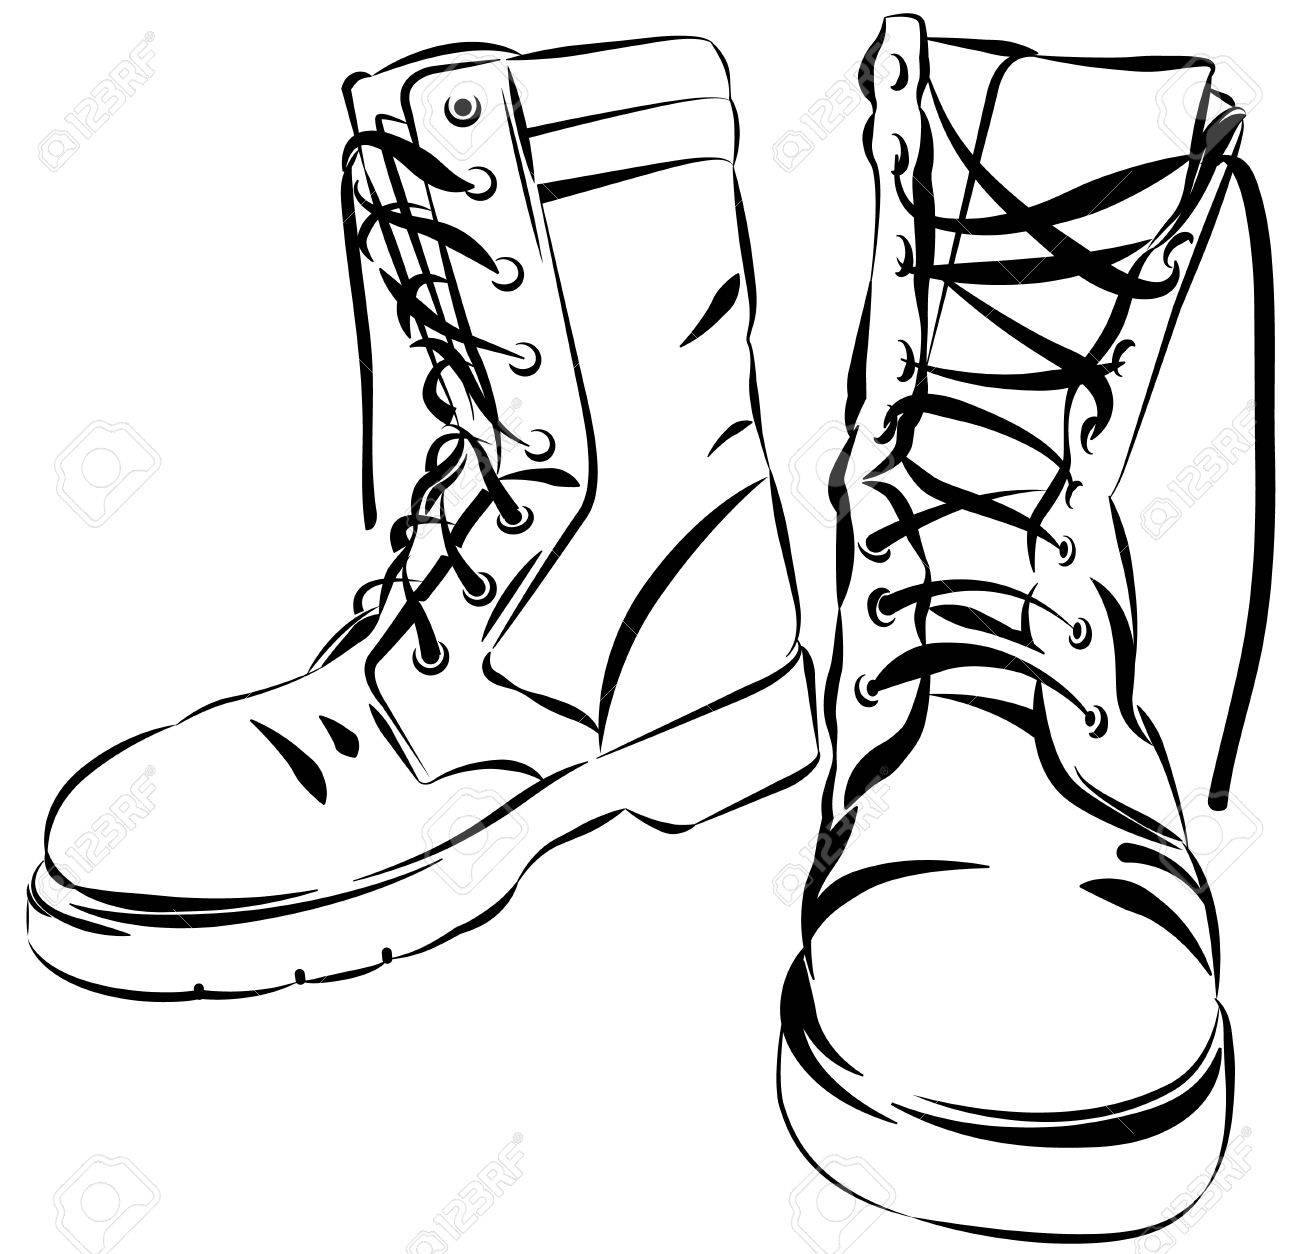 old army boots military leather worn boots vector graphic rh 123rf com Real Vector Graphics Scalable Vector Graphics